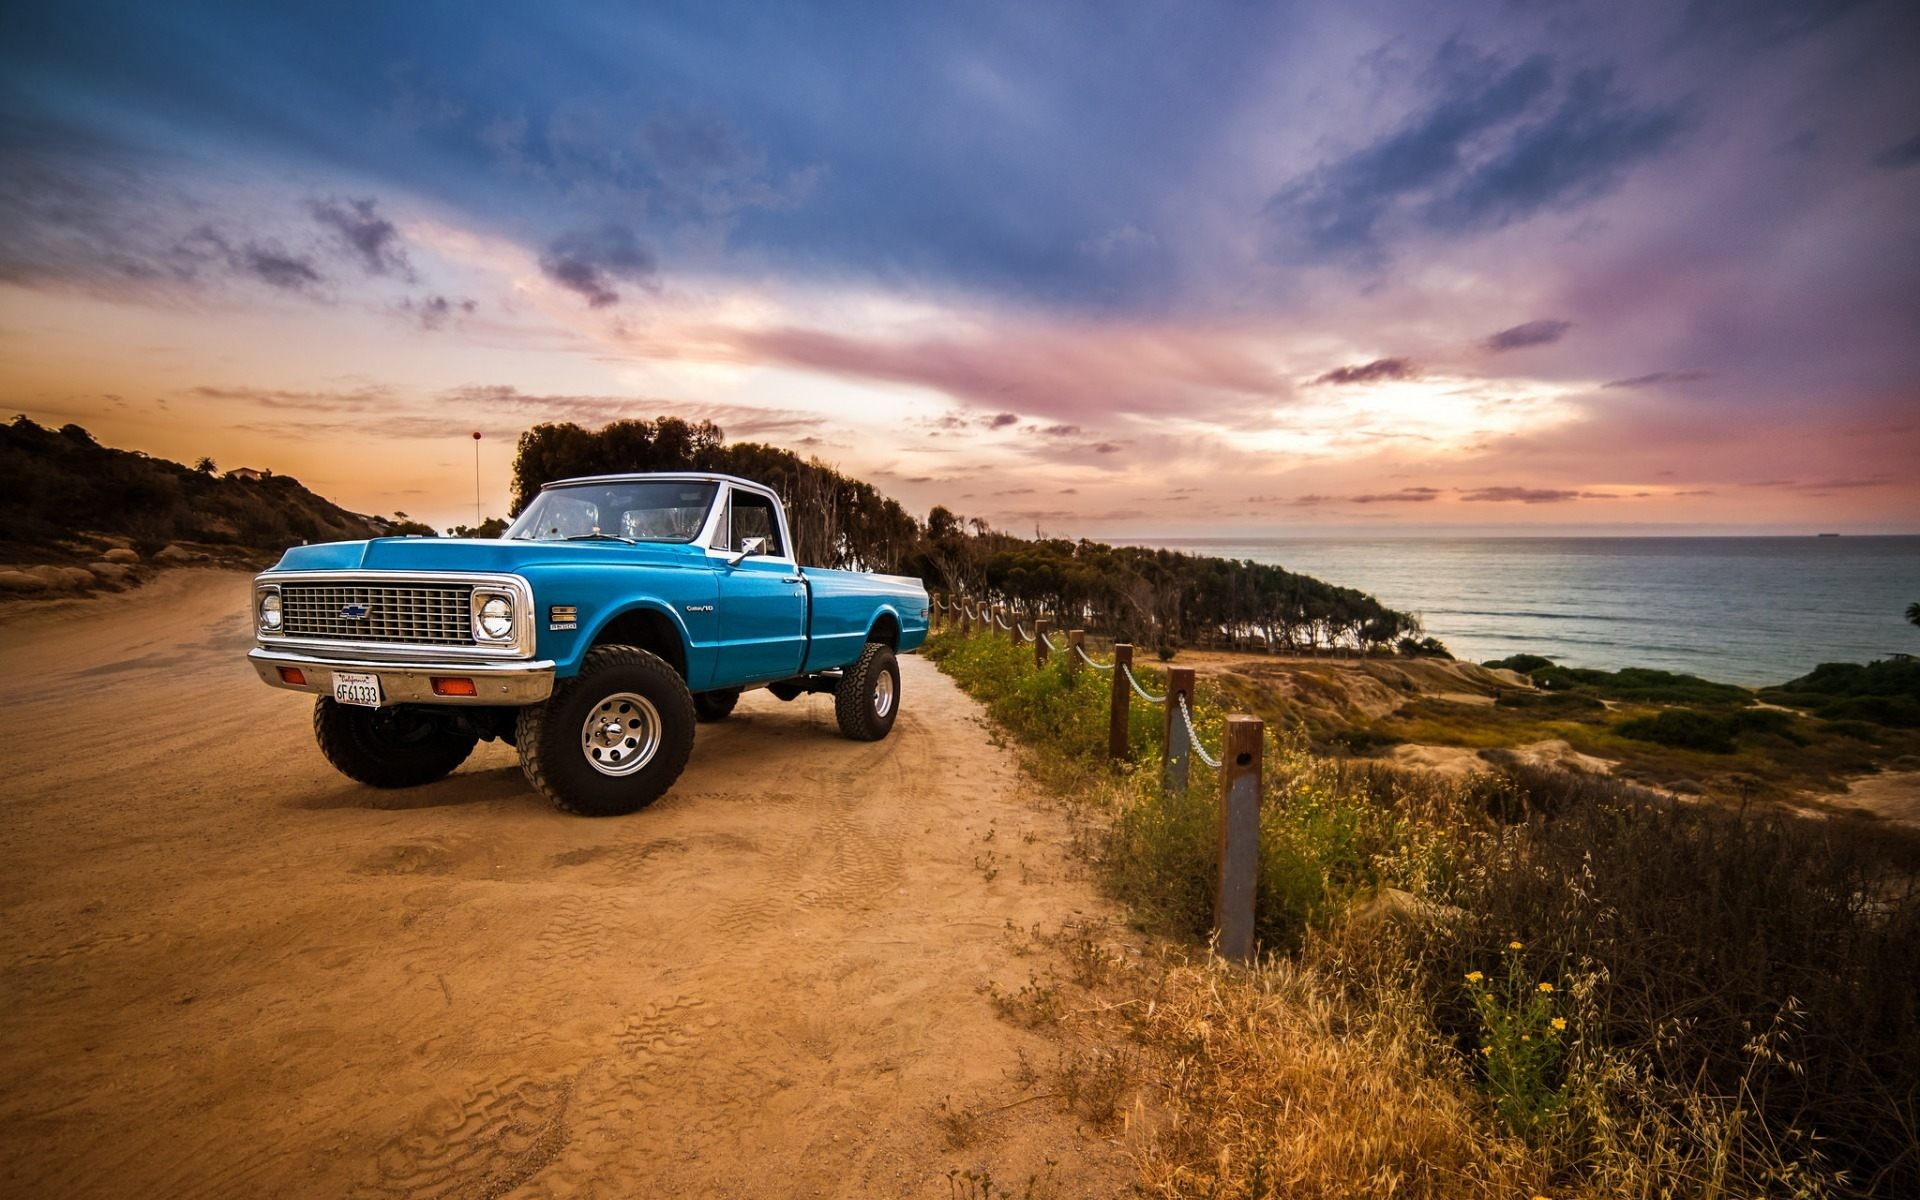 Collection Of Chevy Truck Wallpapers On HDWallpapers